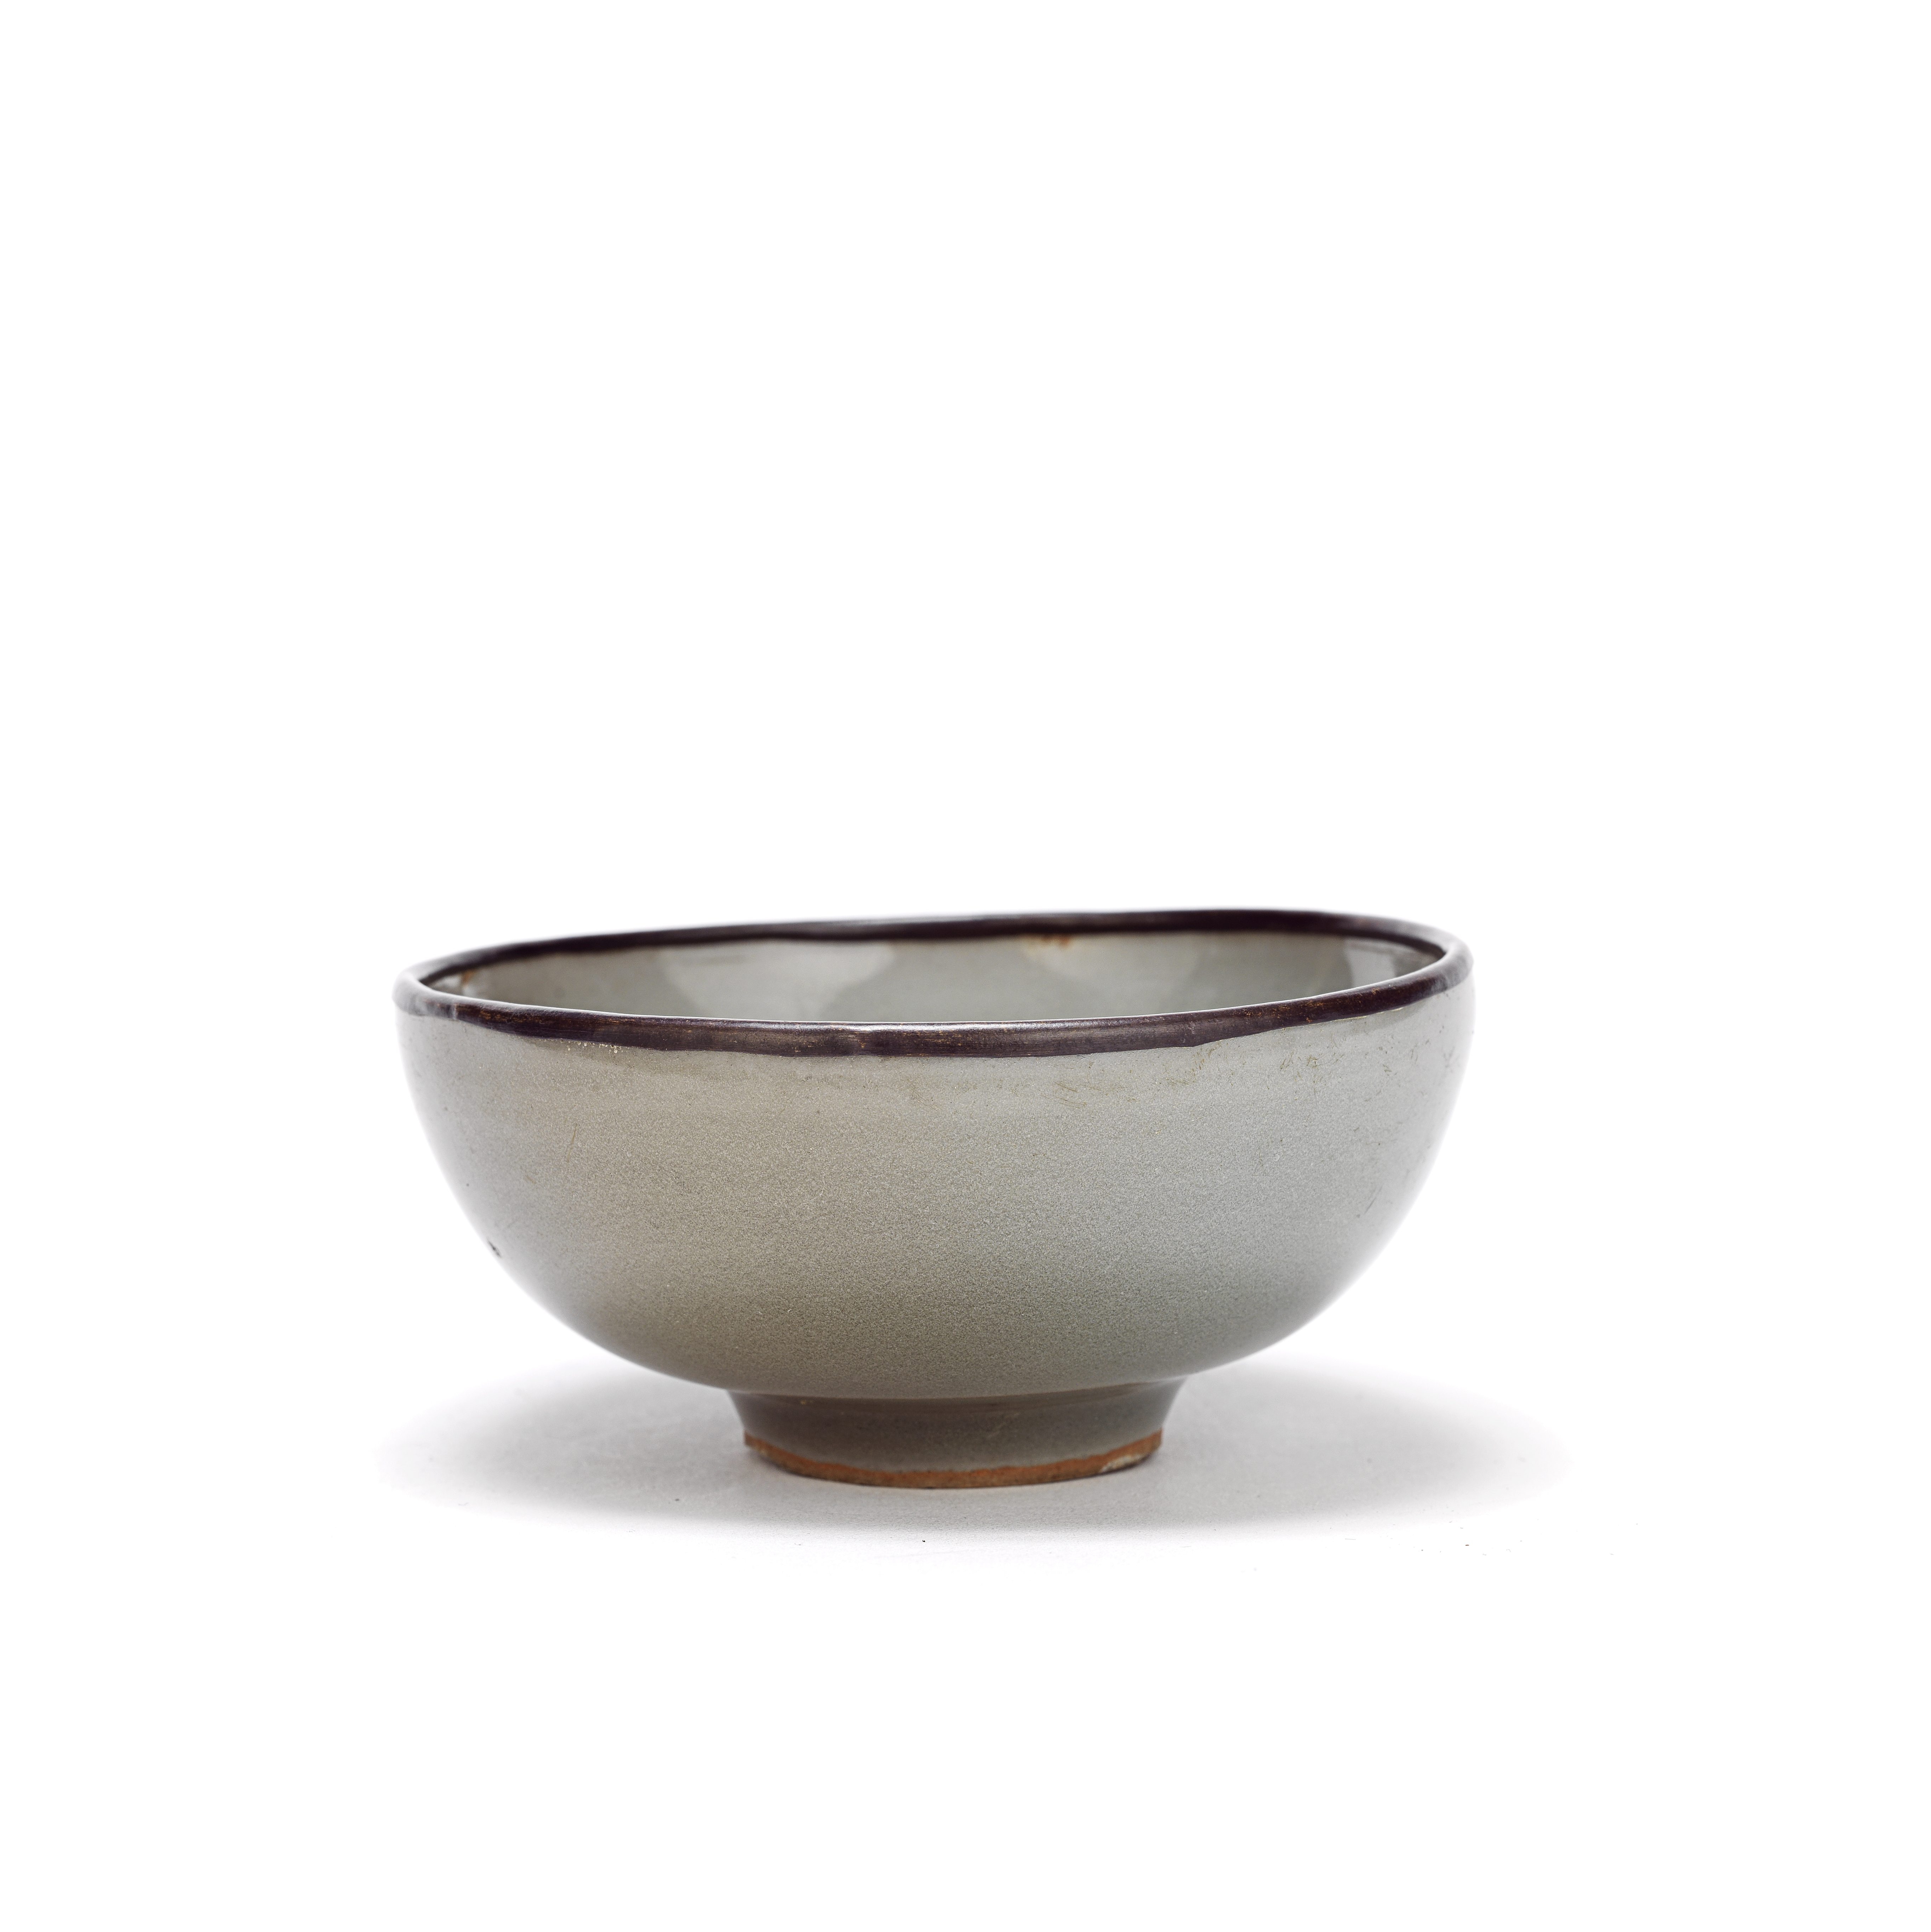 A SMALL LONGQUAN CELADON-GLAZED BOWL Southern Song Dynasty